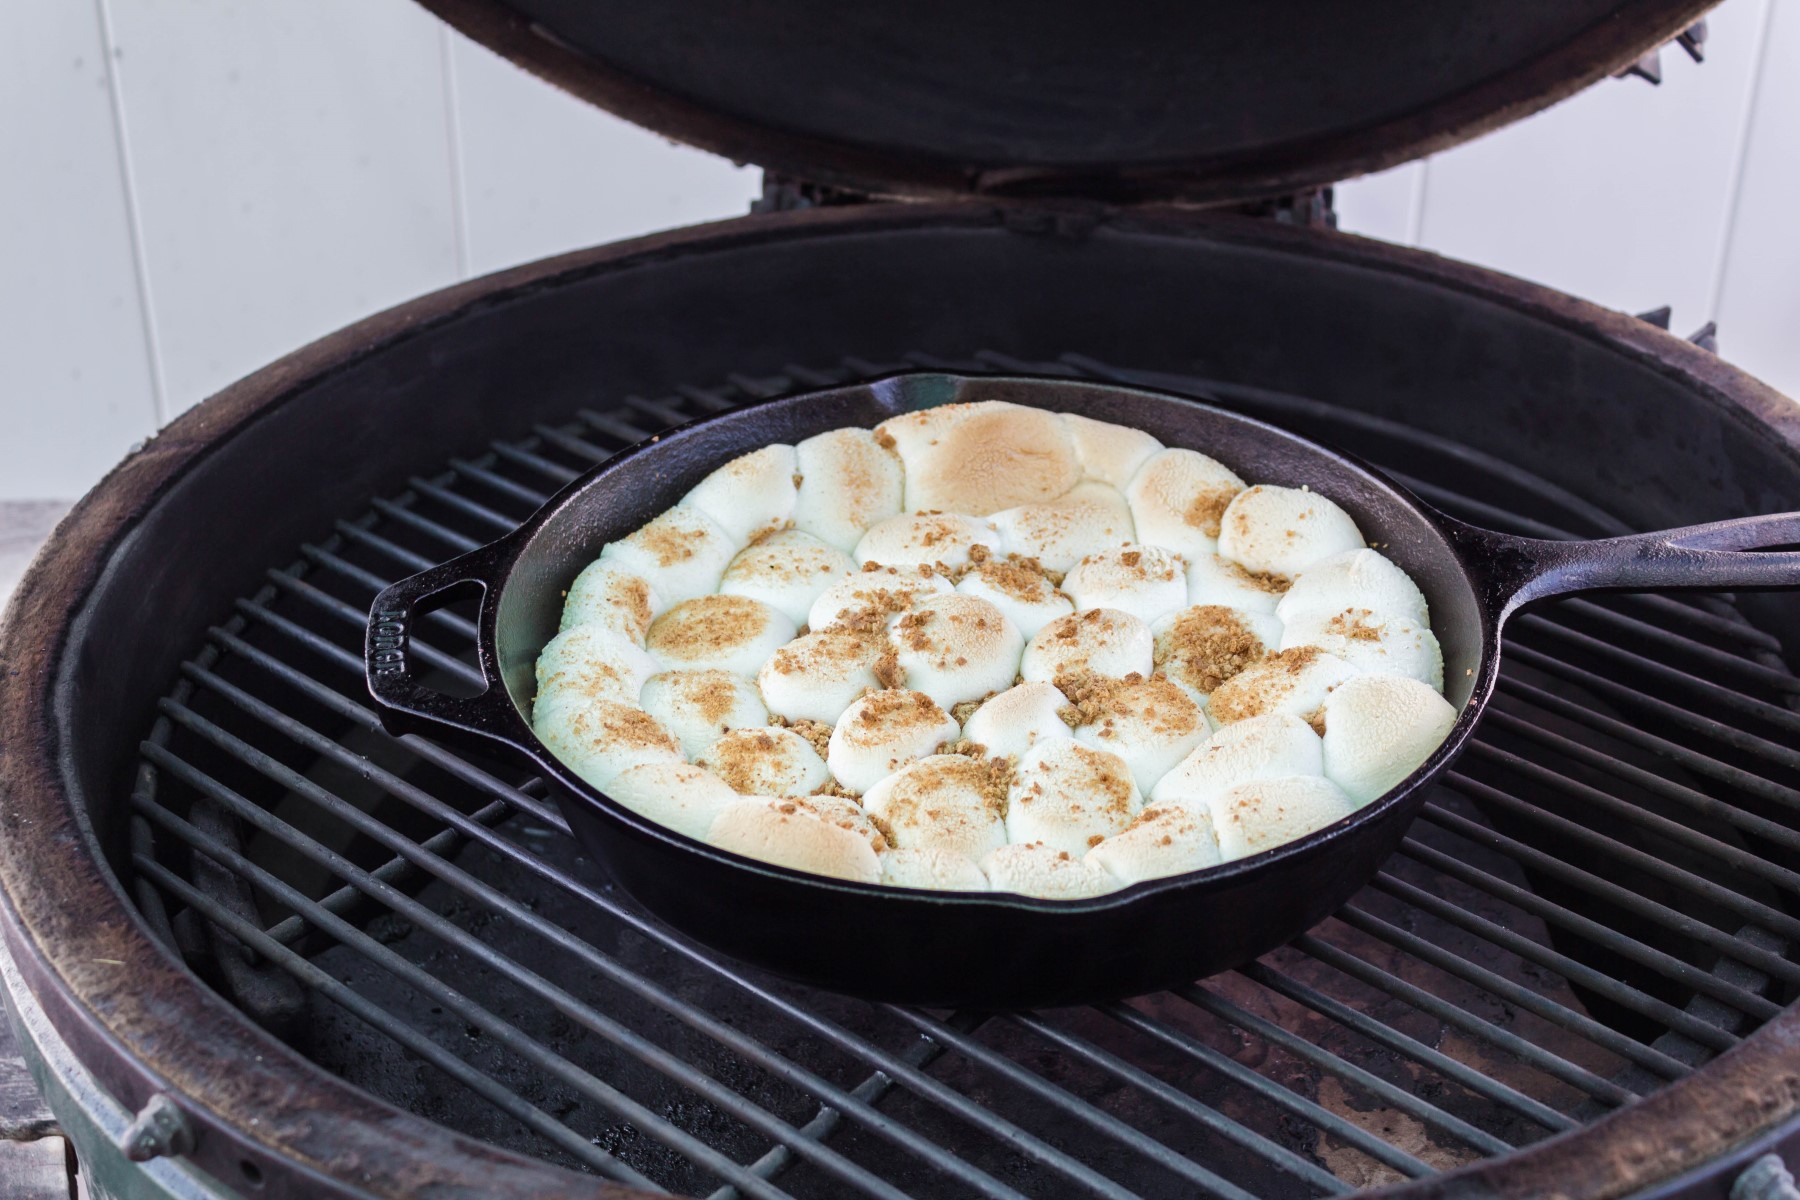 Cast iron skillet of s'mores on a BBQ grill with the marshmallows toasted on top.